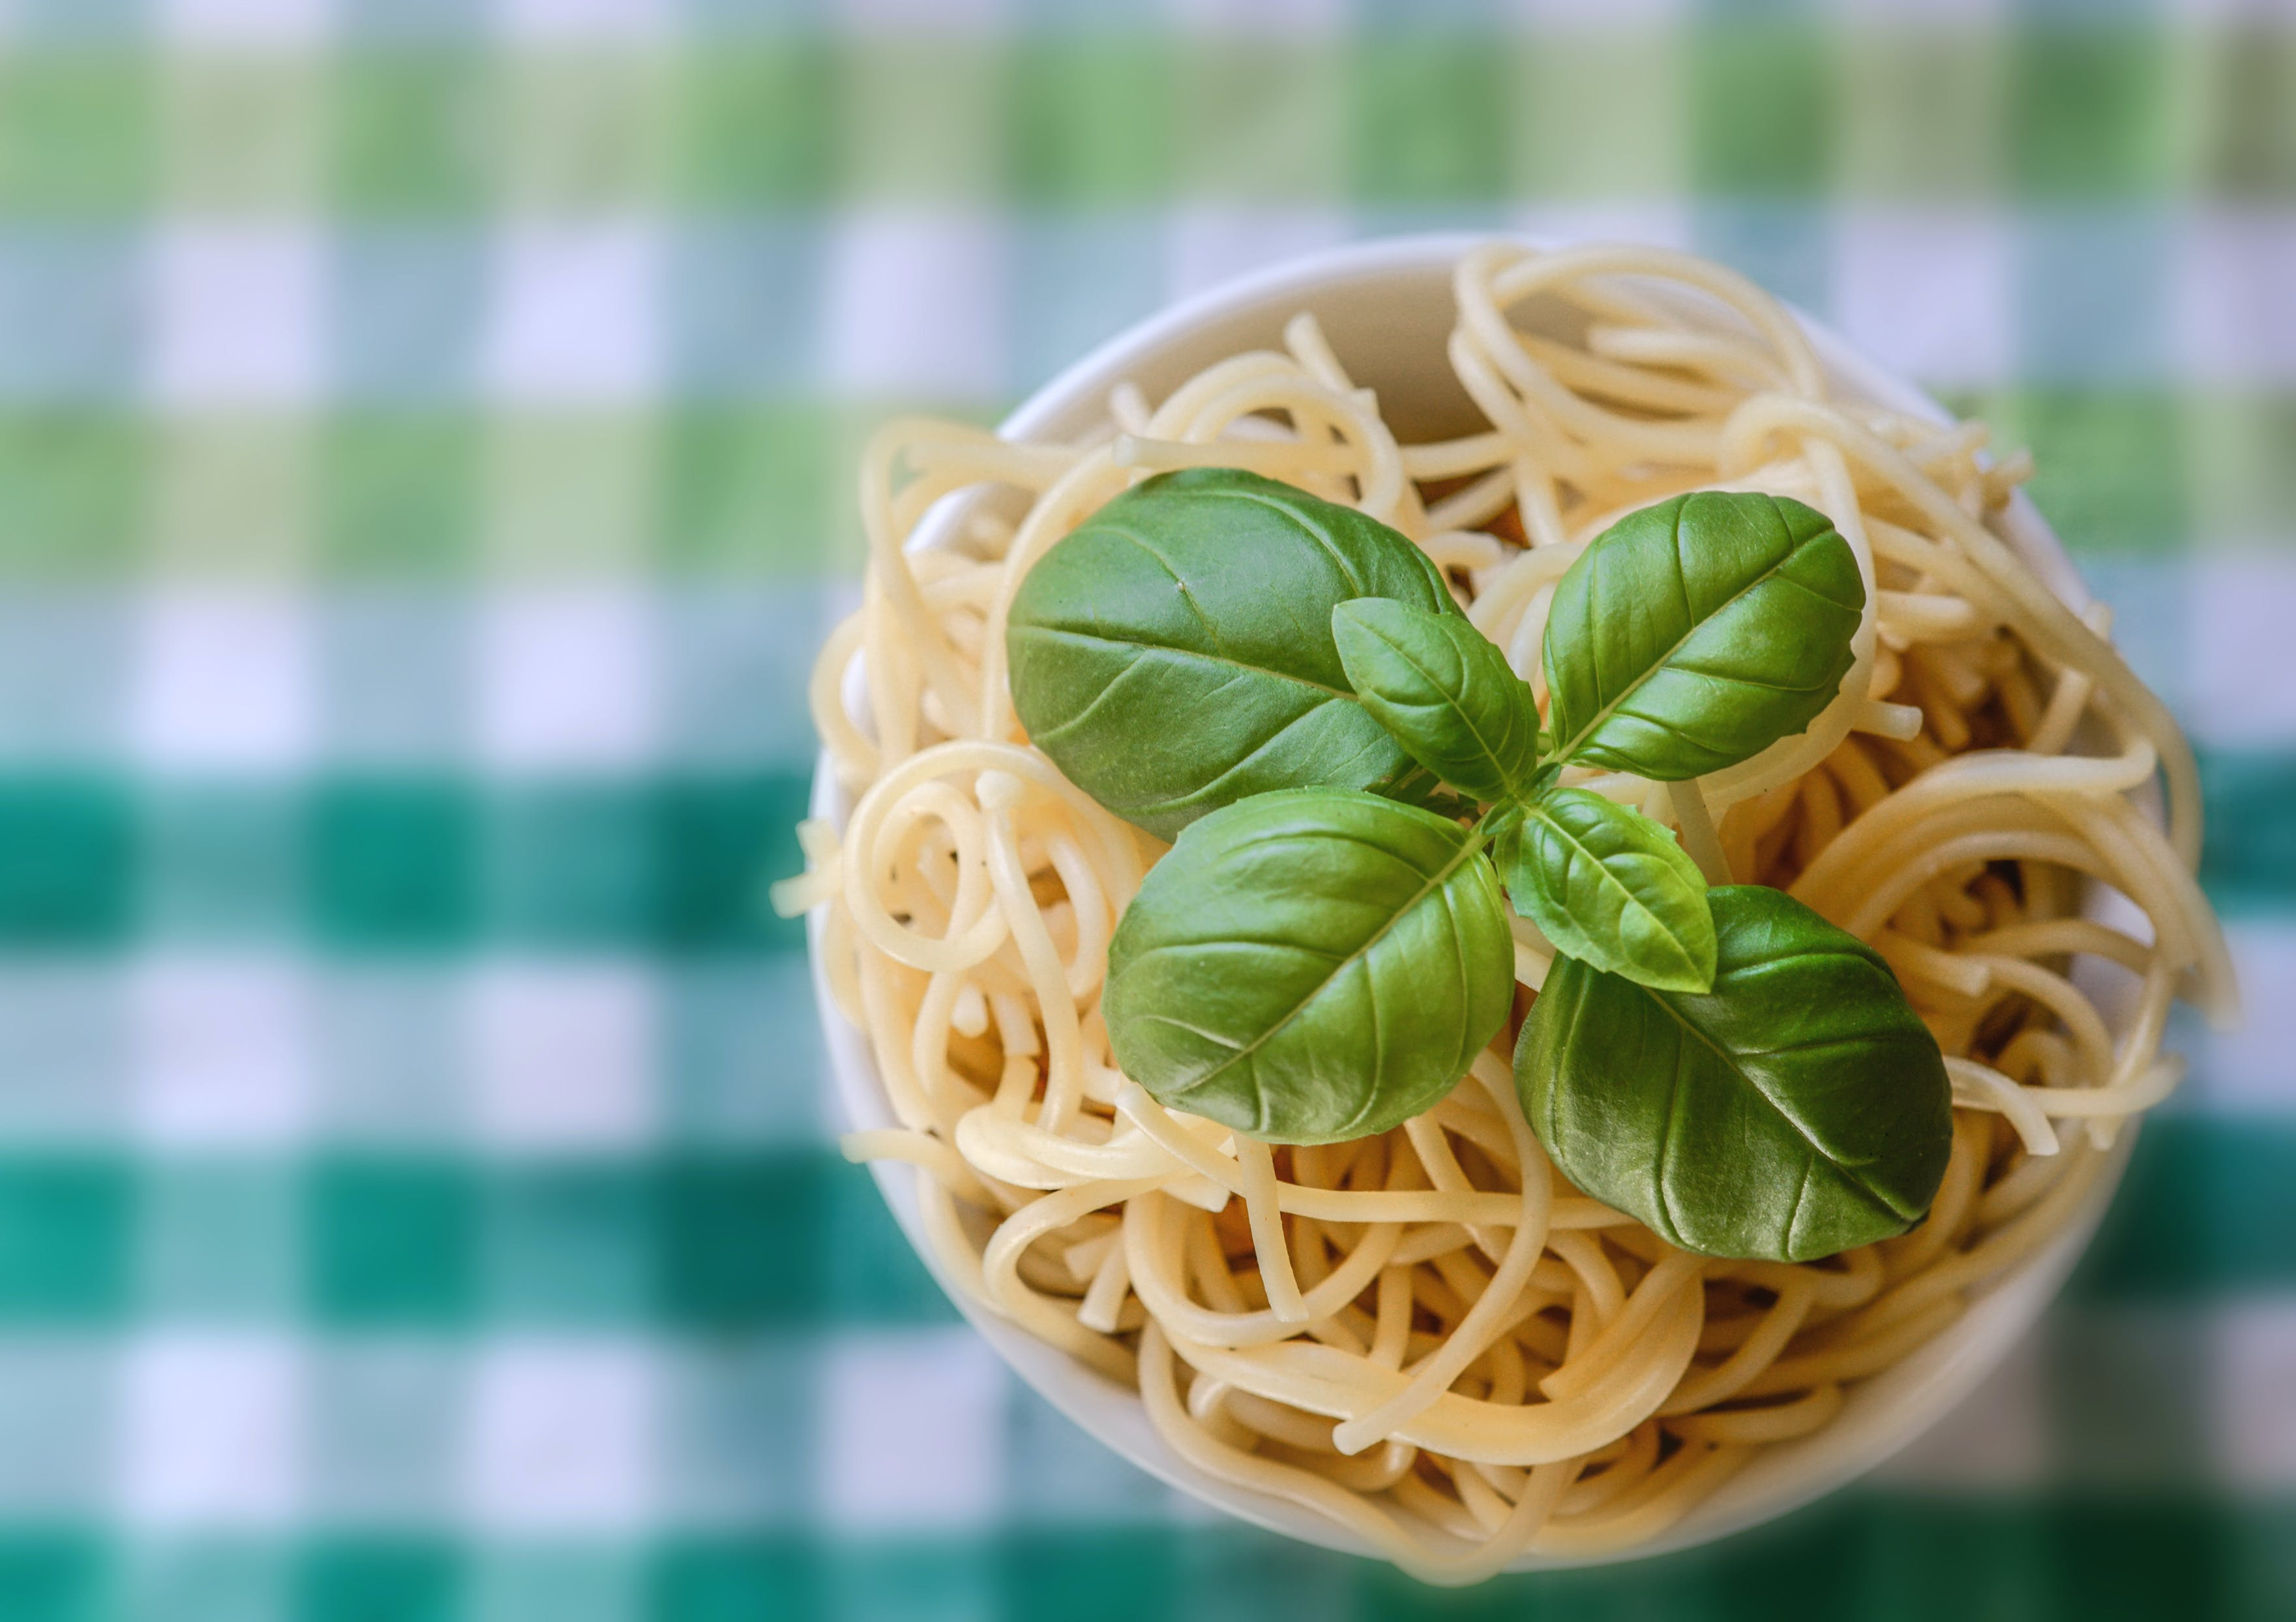 Selective Focus Photo of Noddles With Green Leaf Toppings